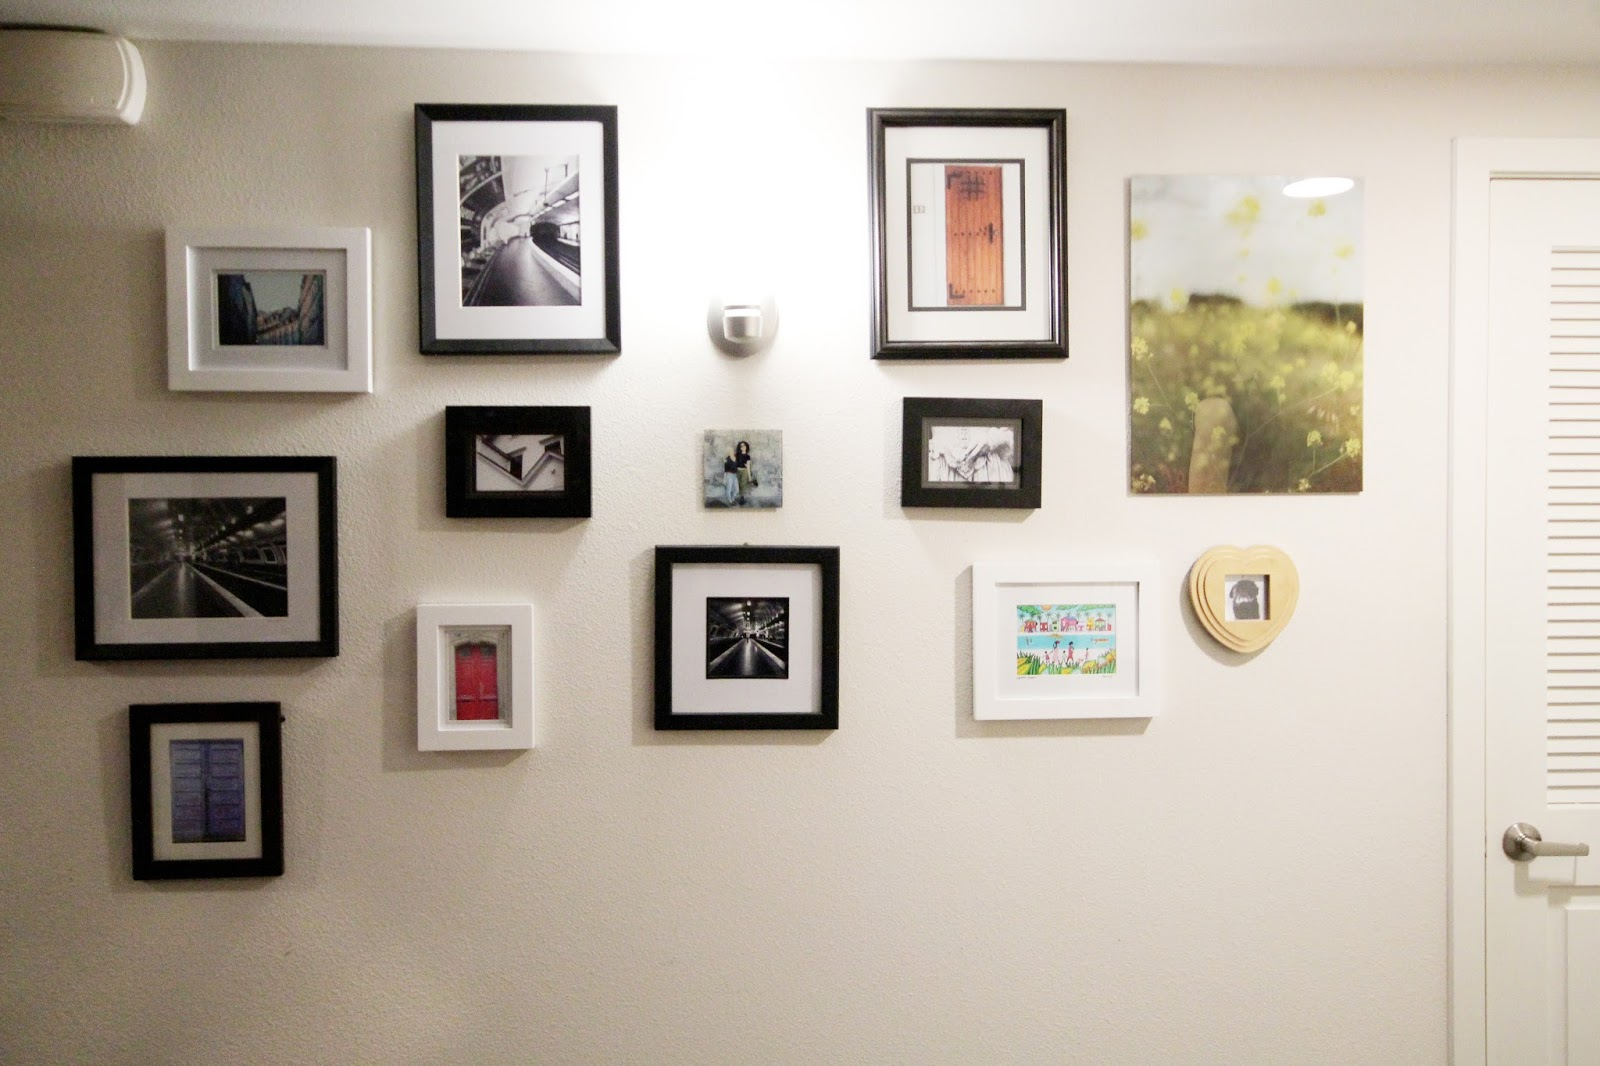 How to create a gallery wall in your home amused gallery walls are a favorite decor feature of mine having a personalized space set aside for a display of fond memories love destinations jeuxipadfo Images